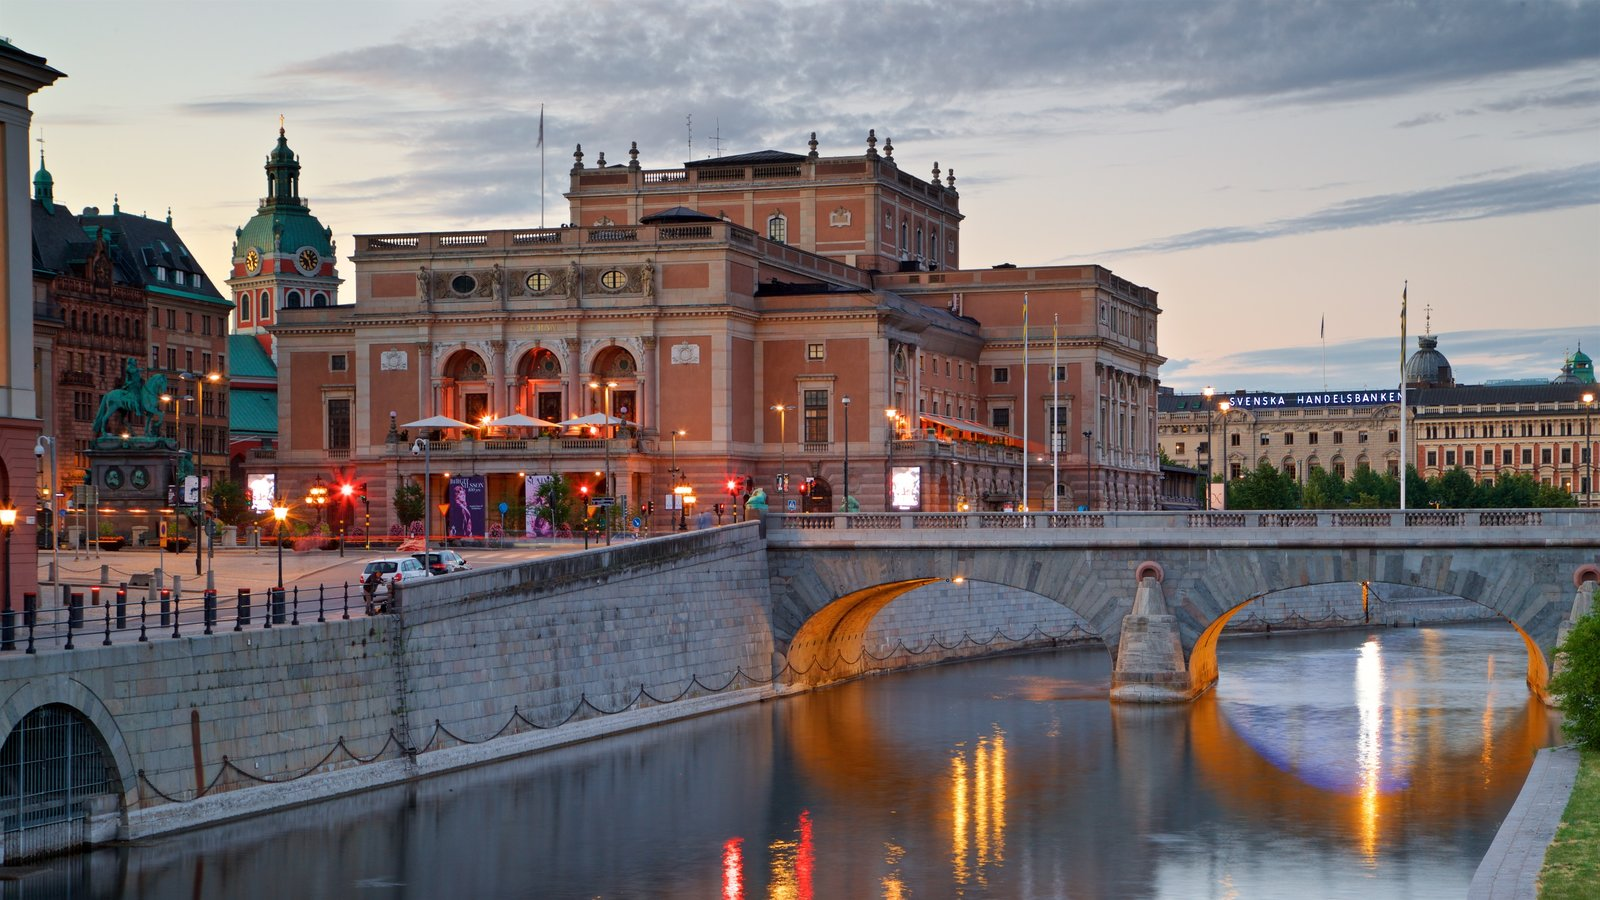 Royal Swedish Opera showing heritage architecture, a sunset and a river or creek